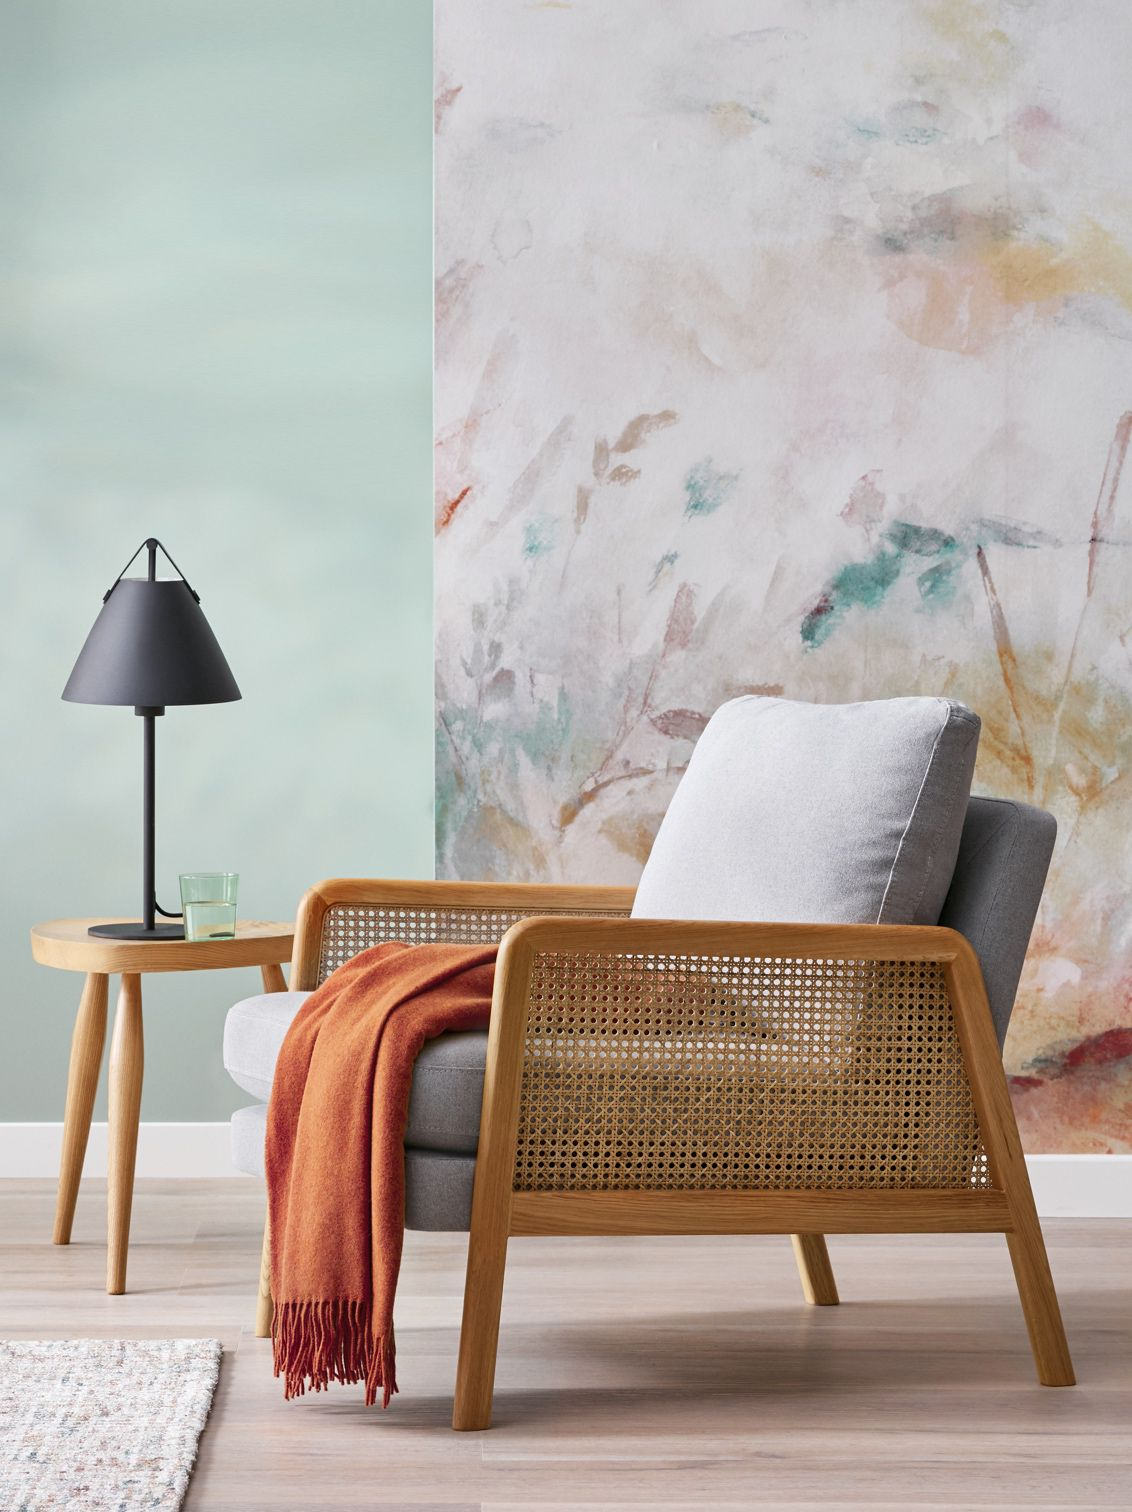 Contrast light wooden furniture with statement home accessories